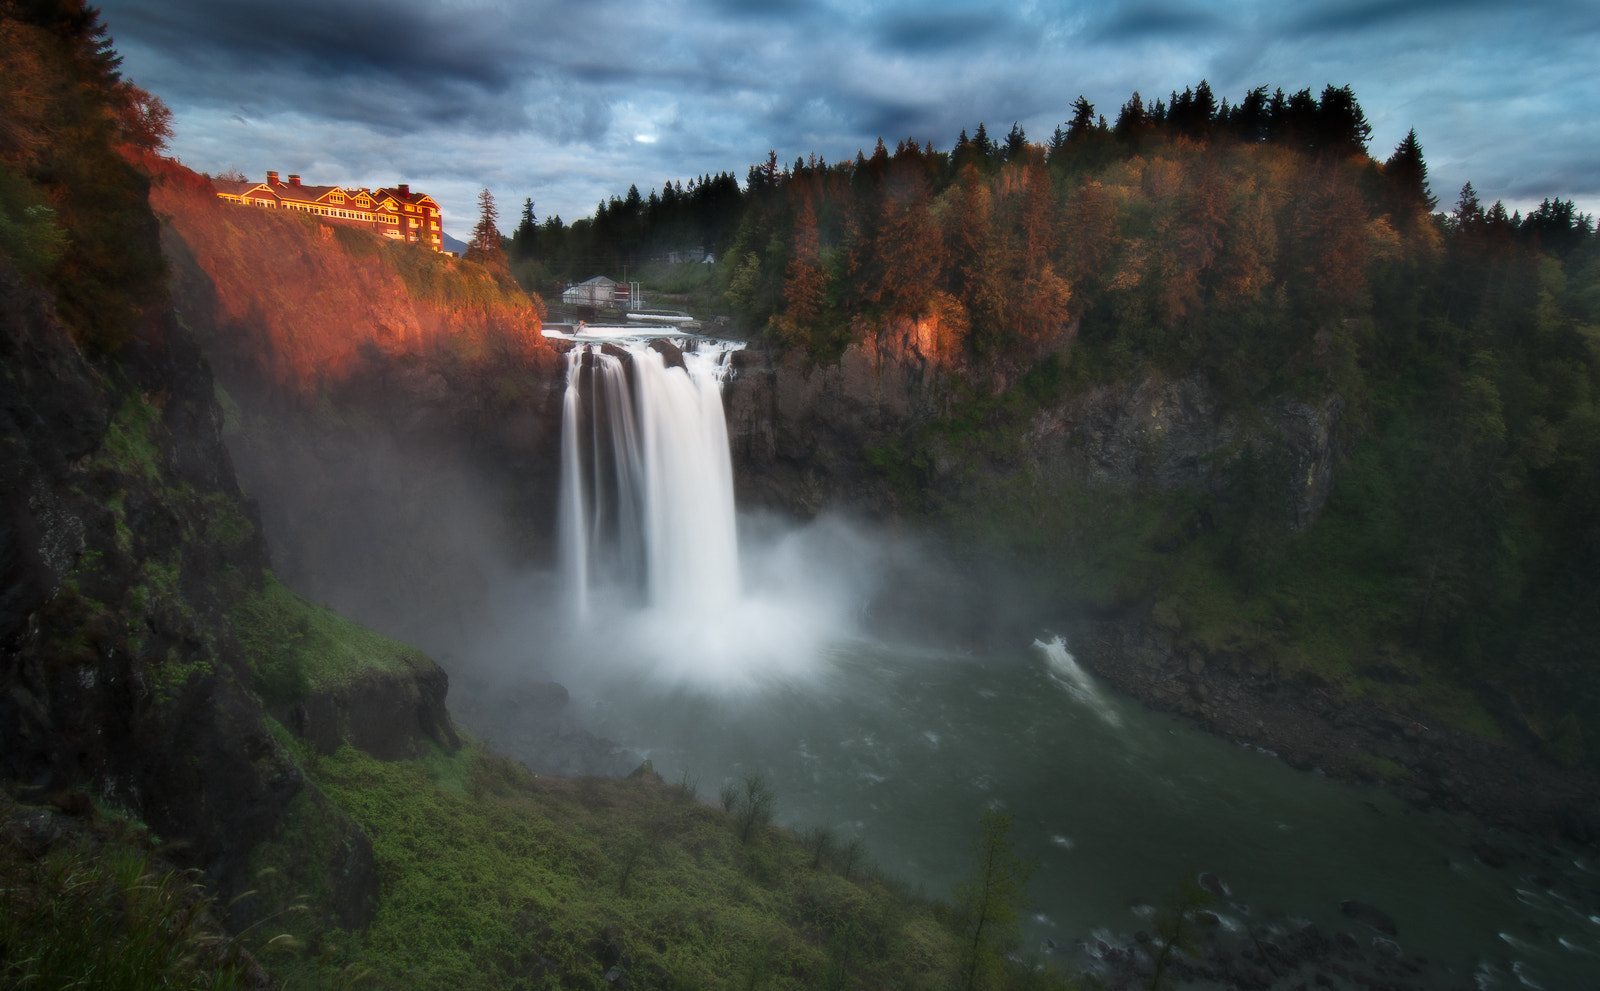 Photograph Last Light Snoqualmie Falls by Jay D. on 500px